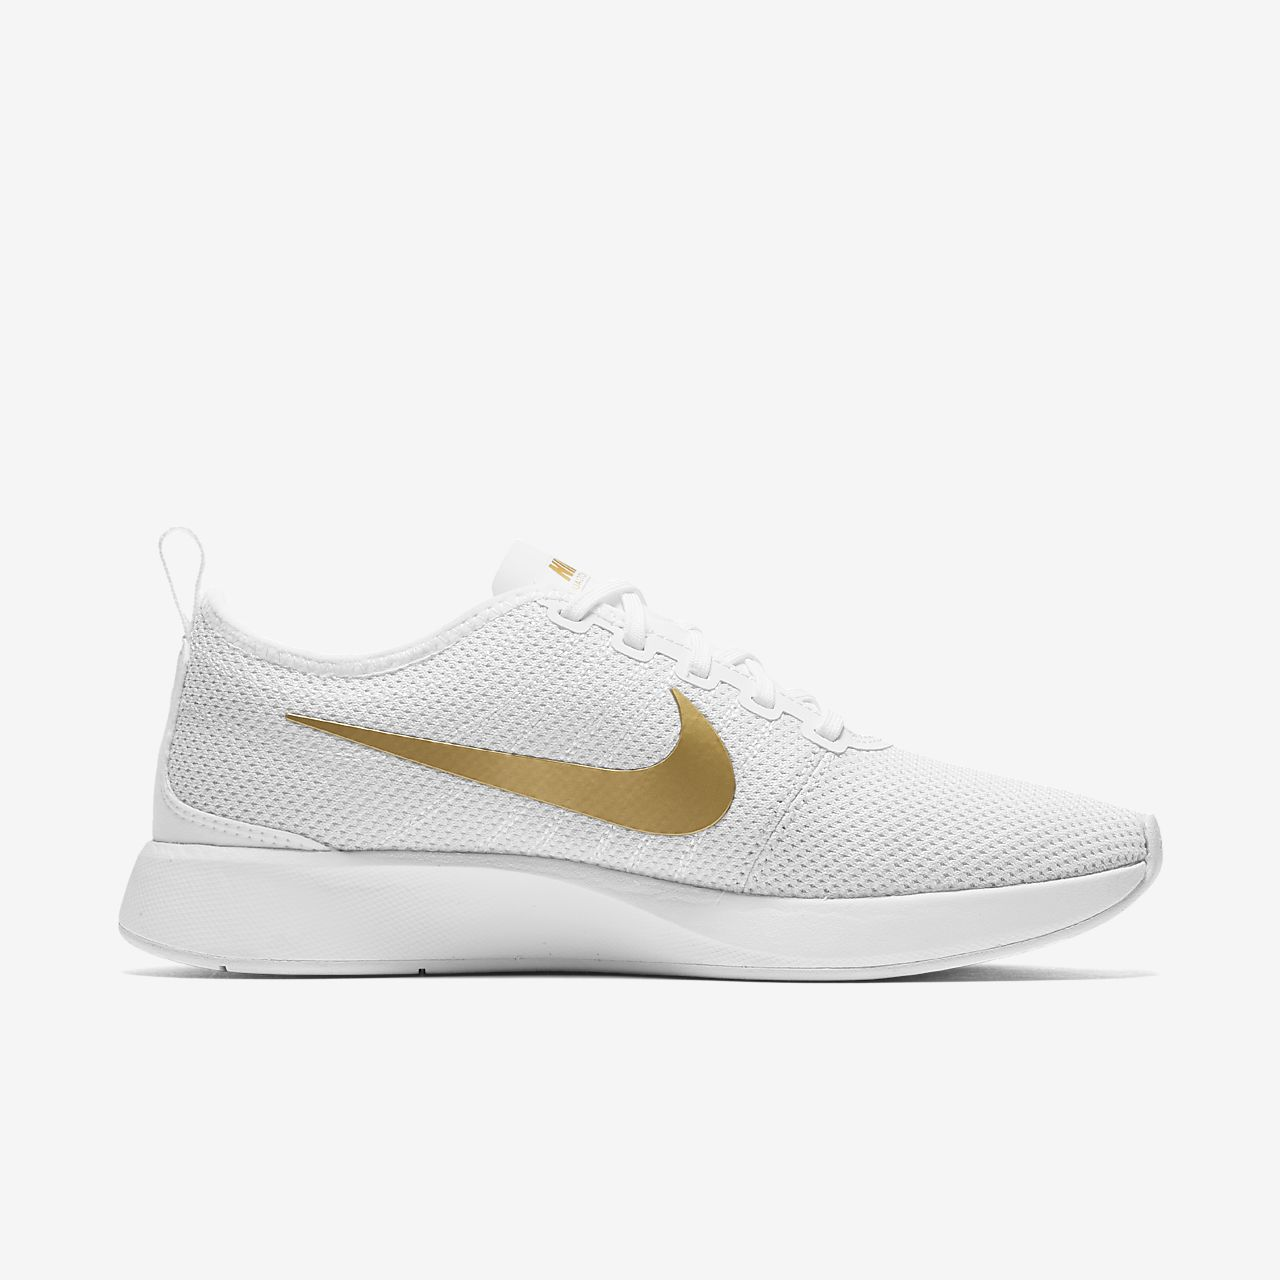 Nike Chaussures Double Racer Ton Blanc aXw1mhetCN